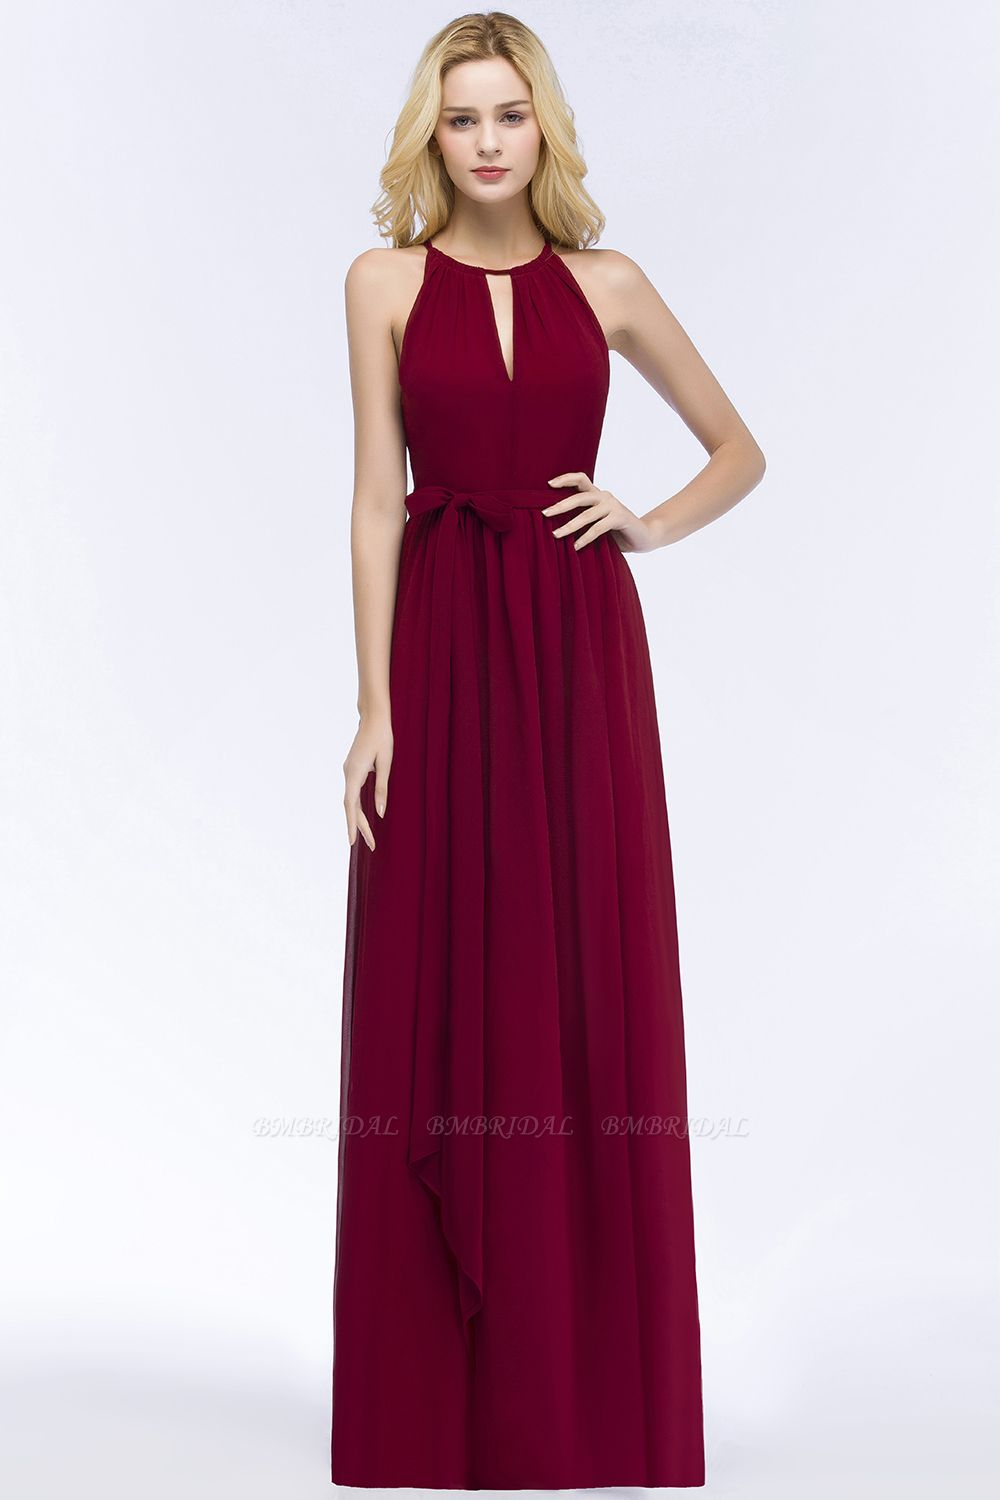 BMbridal A-line Halter Floor Length Burgundy Bridesmaid Dress with Bow Sash